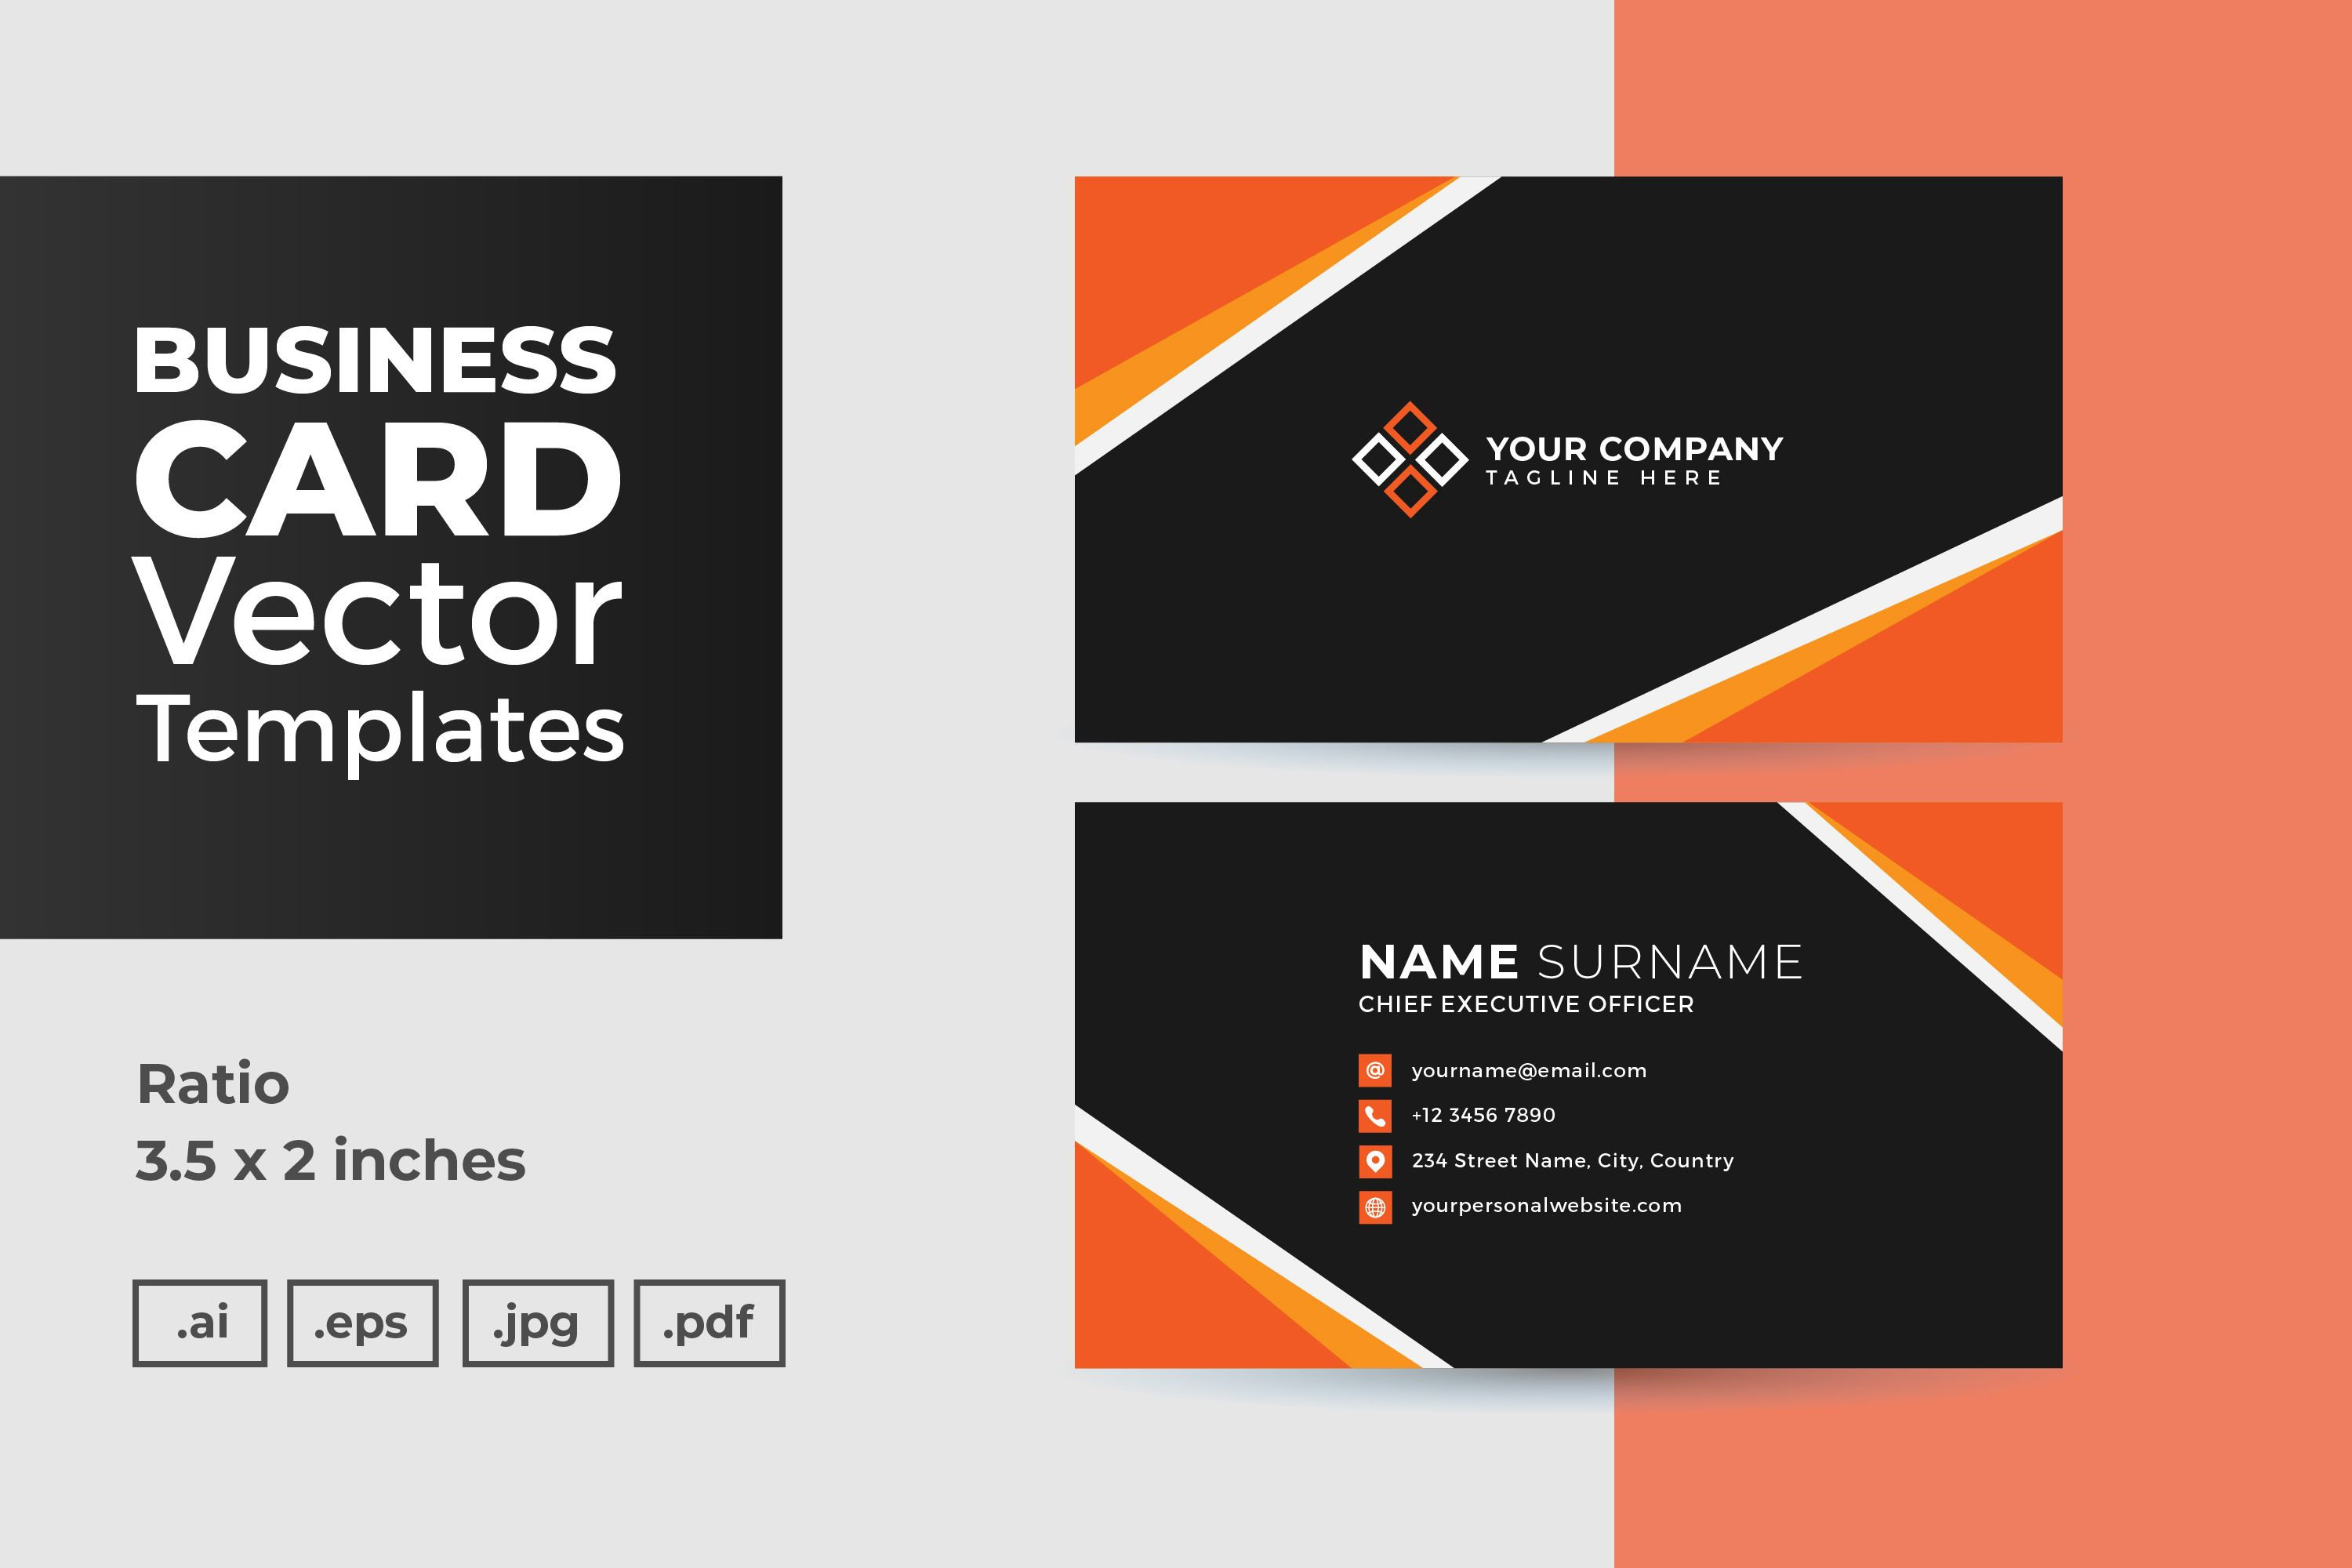 Business Card Vector Template Graphic By Dendysign Di 2020